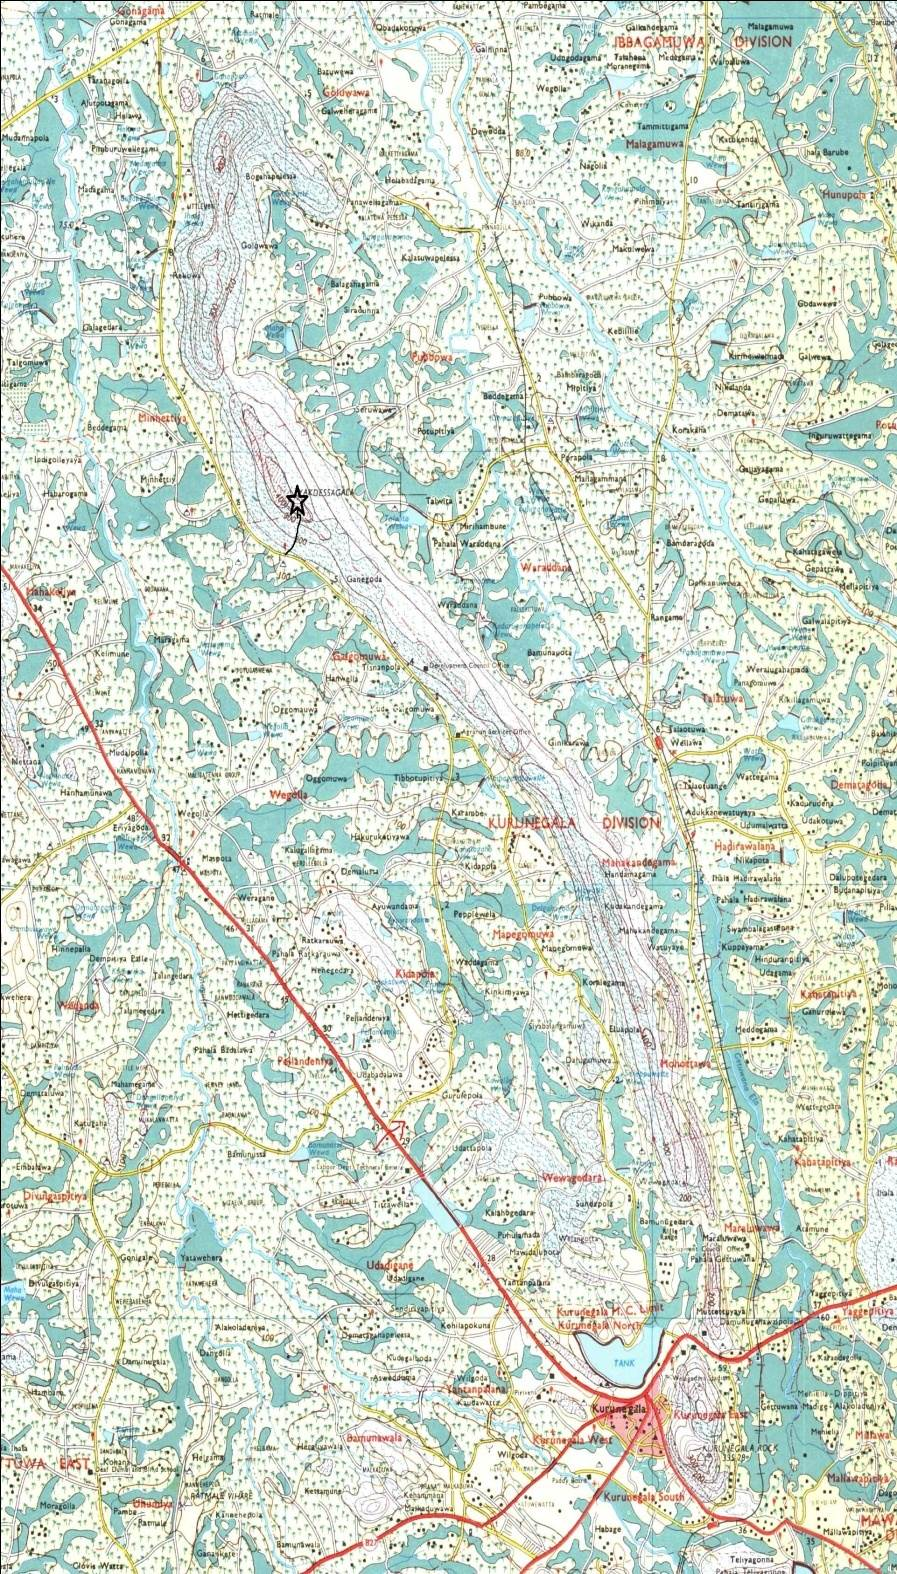 The peak of Yakdessagala shown in the map- black star. Direction from Kurunegala town is shown by red arrow